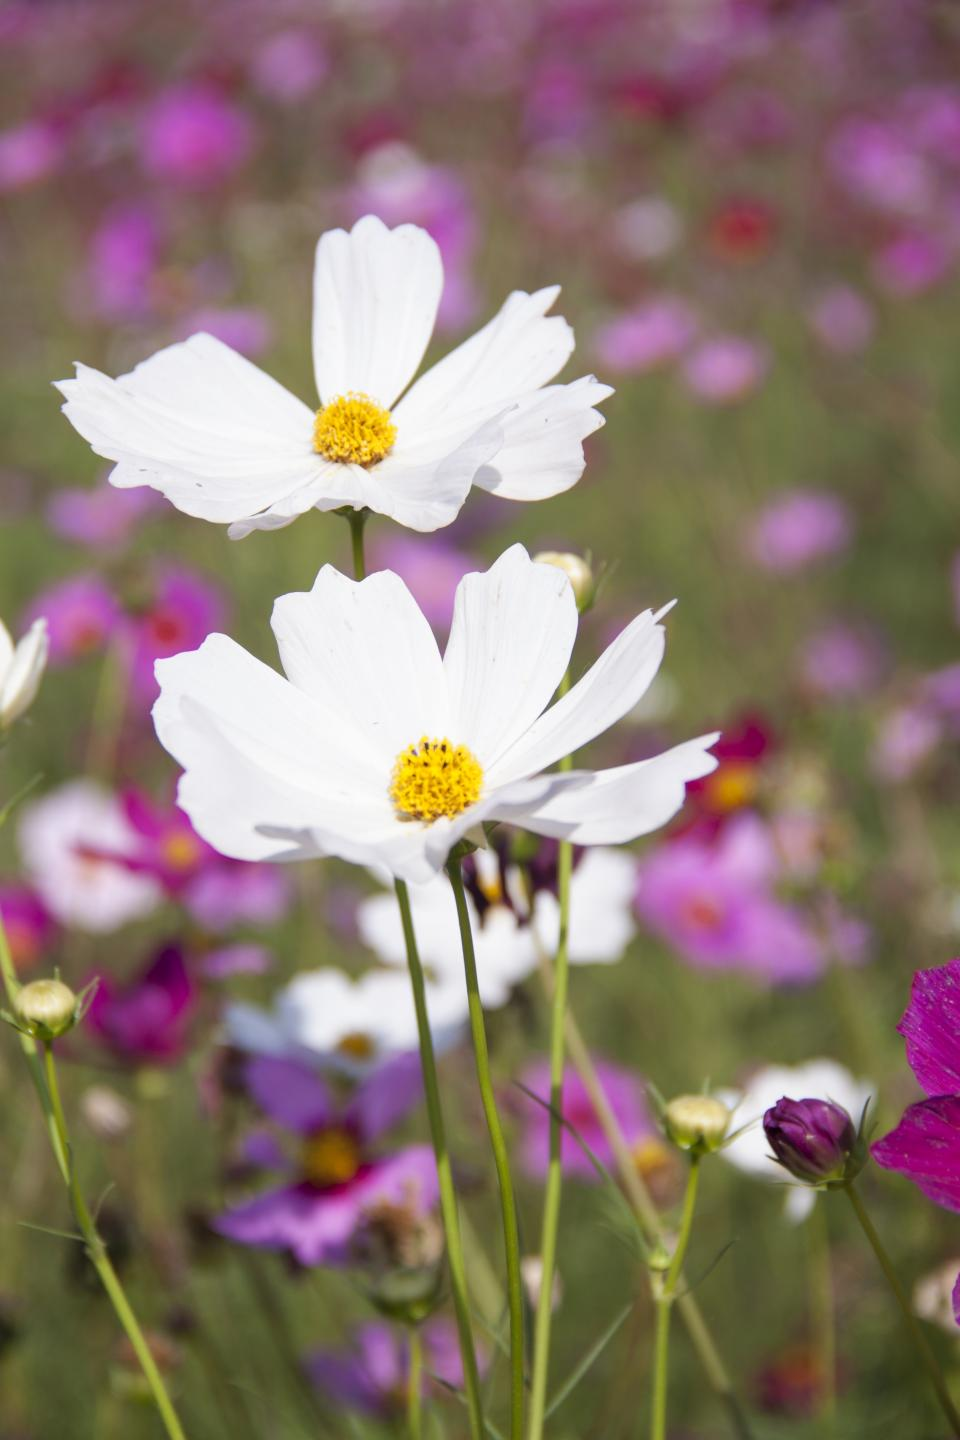 flowers, nature, blossoms, field, bed, white, purple, stems, stalks, petals, leaves, grass, still, bokeh, outdoors